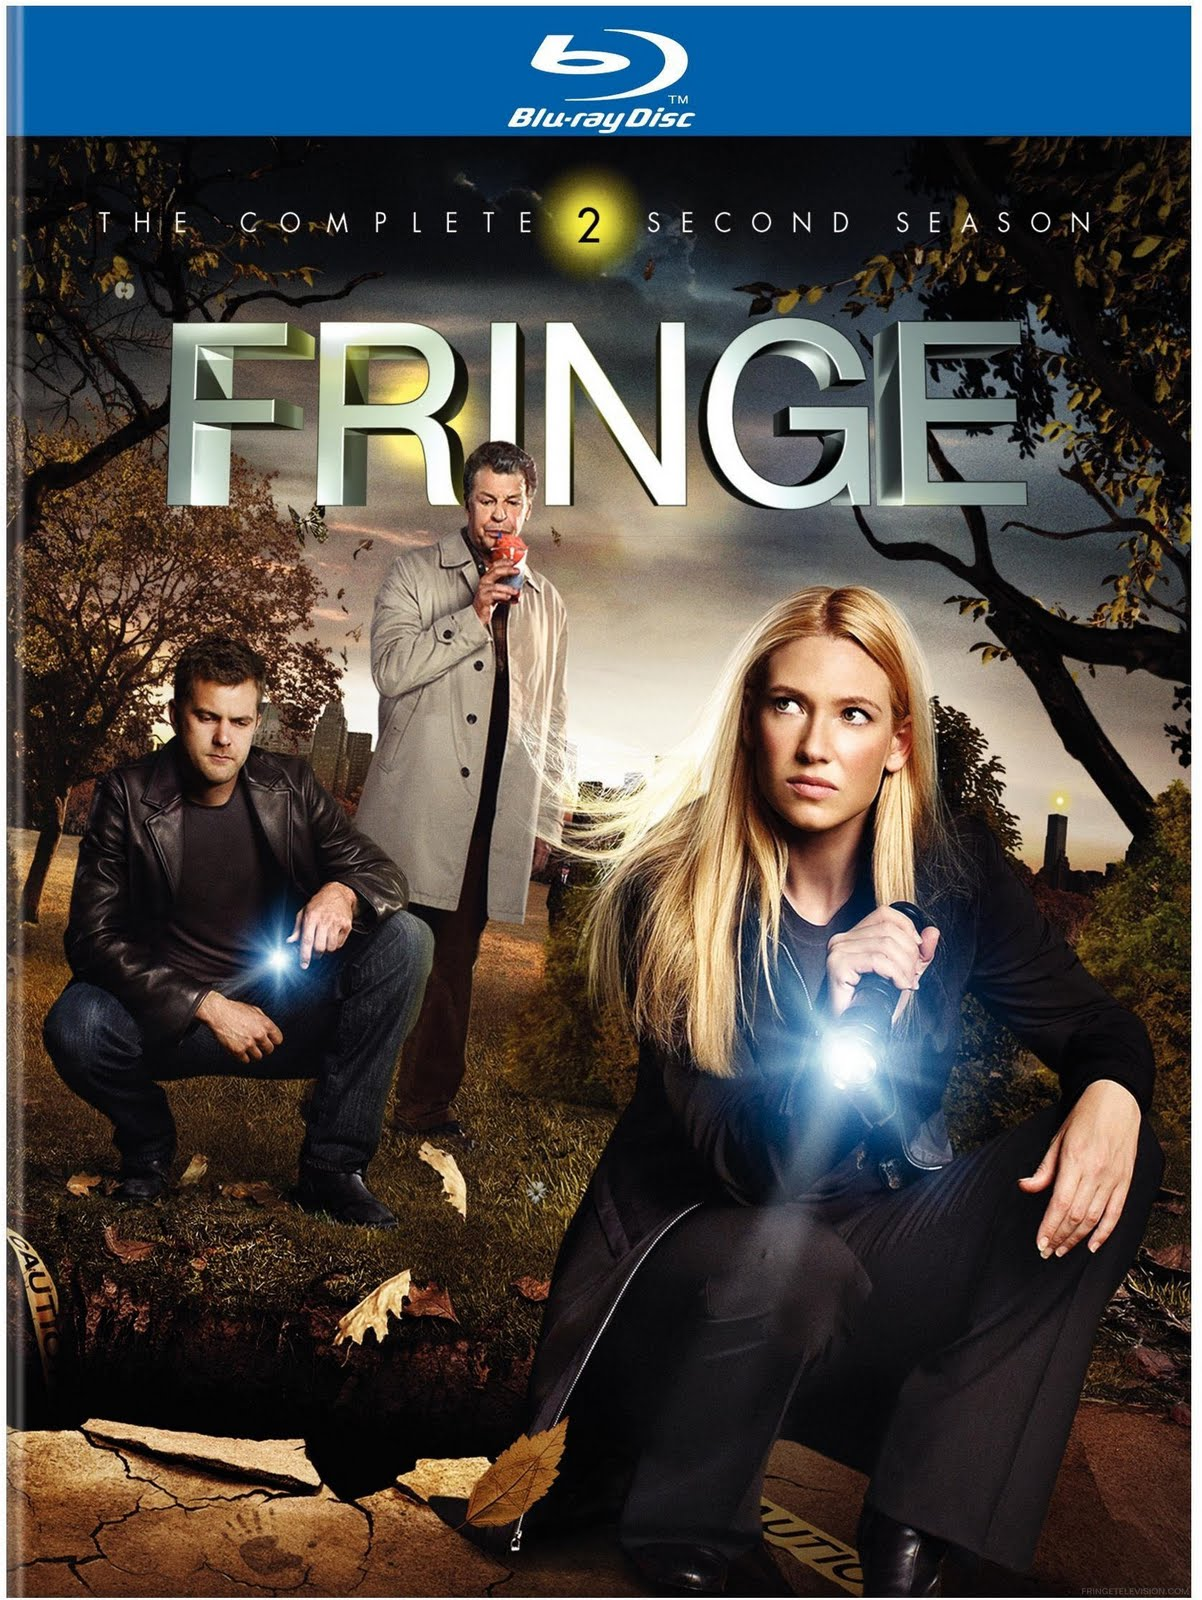 preorder fringe season 2 on blu ray or dvd fringe television fan rh fringetelevision com Fringe Hair Fringes USA